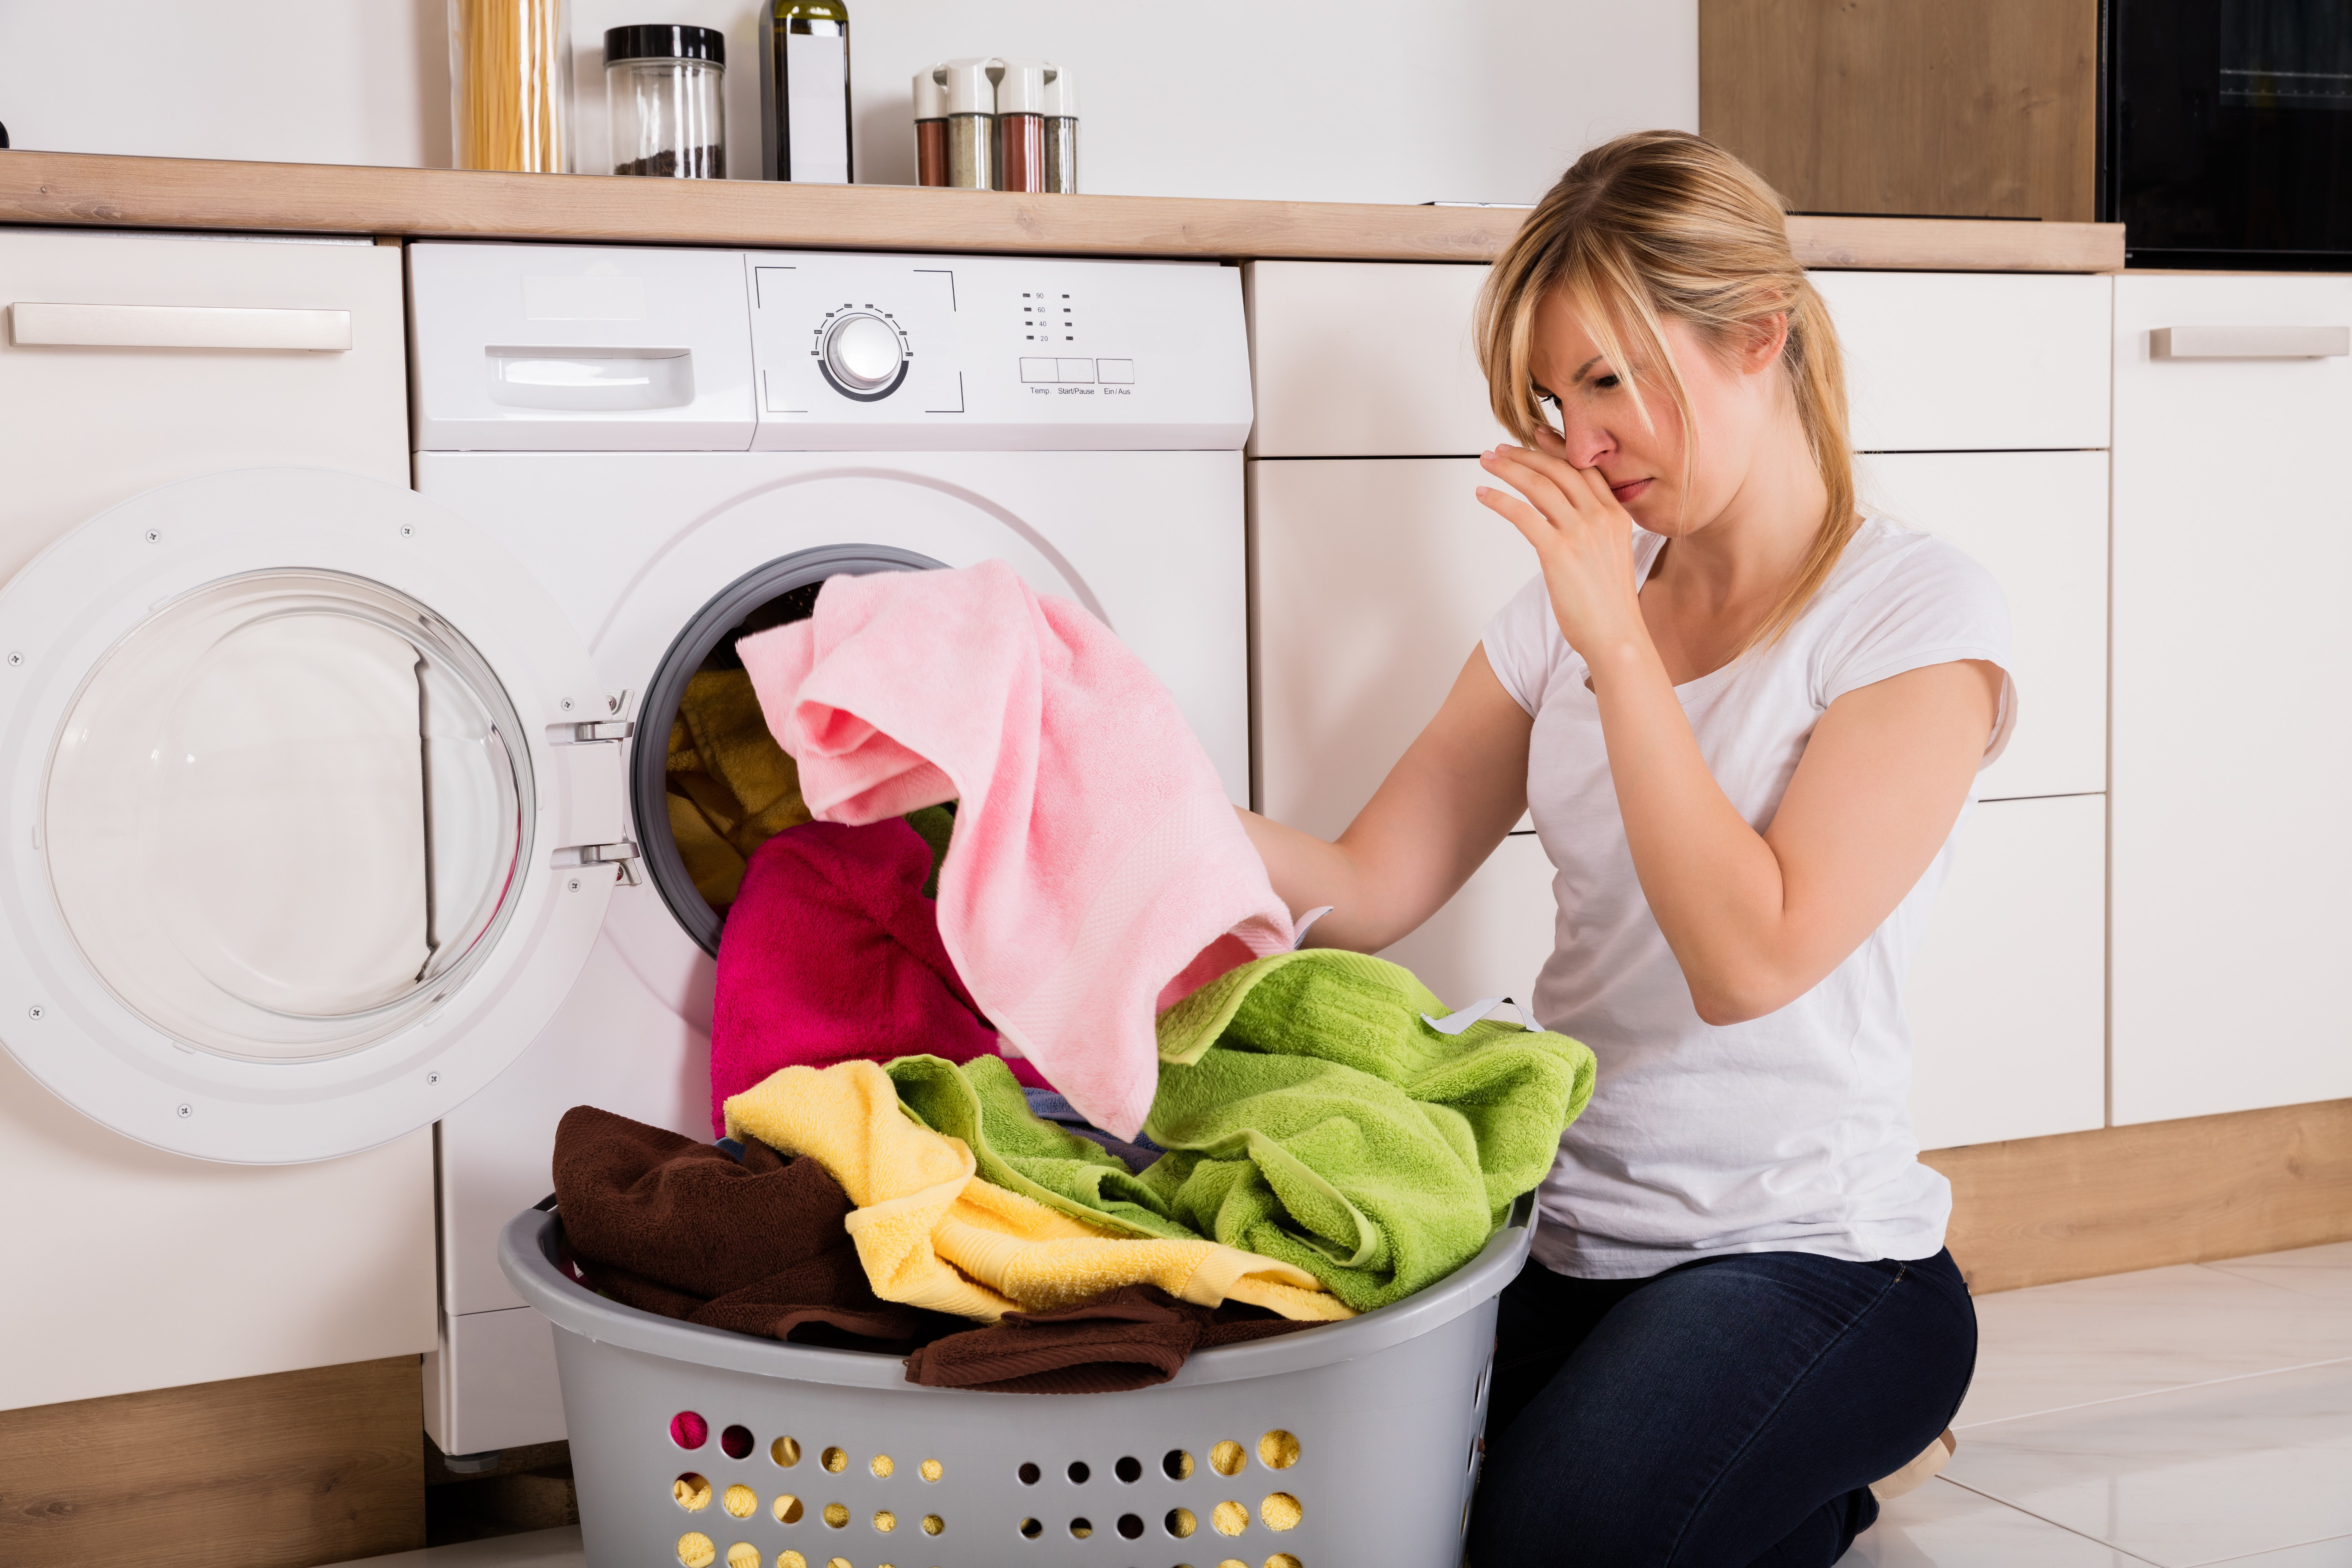 How To Make Your Clothes Smell Good In The Dryer why do my clothes smell after washing?' these are the most